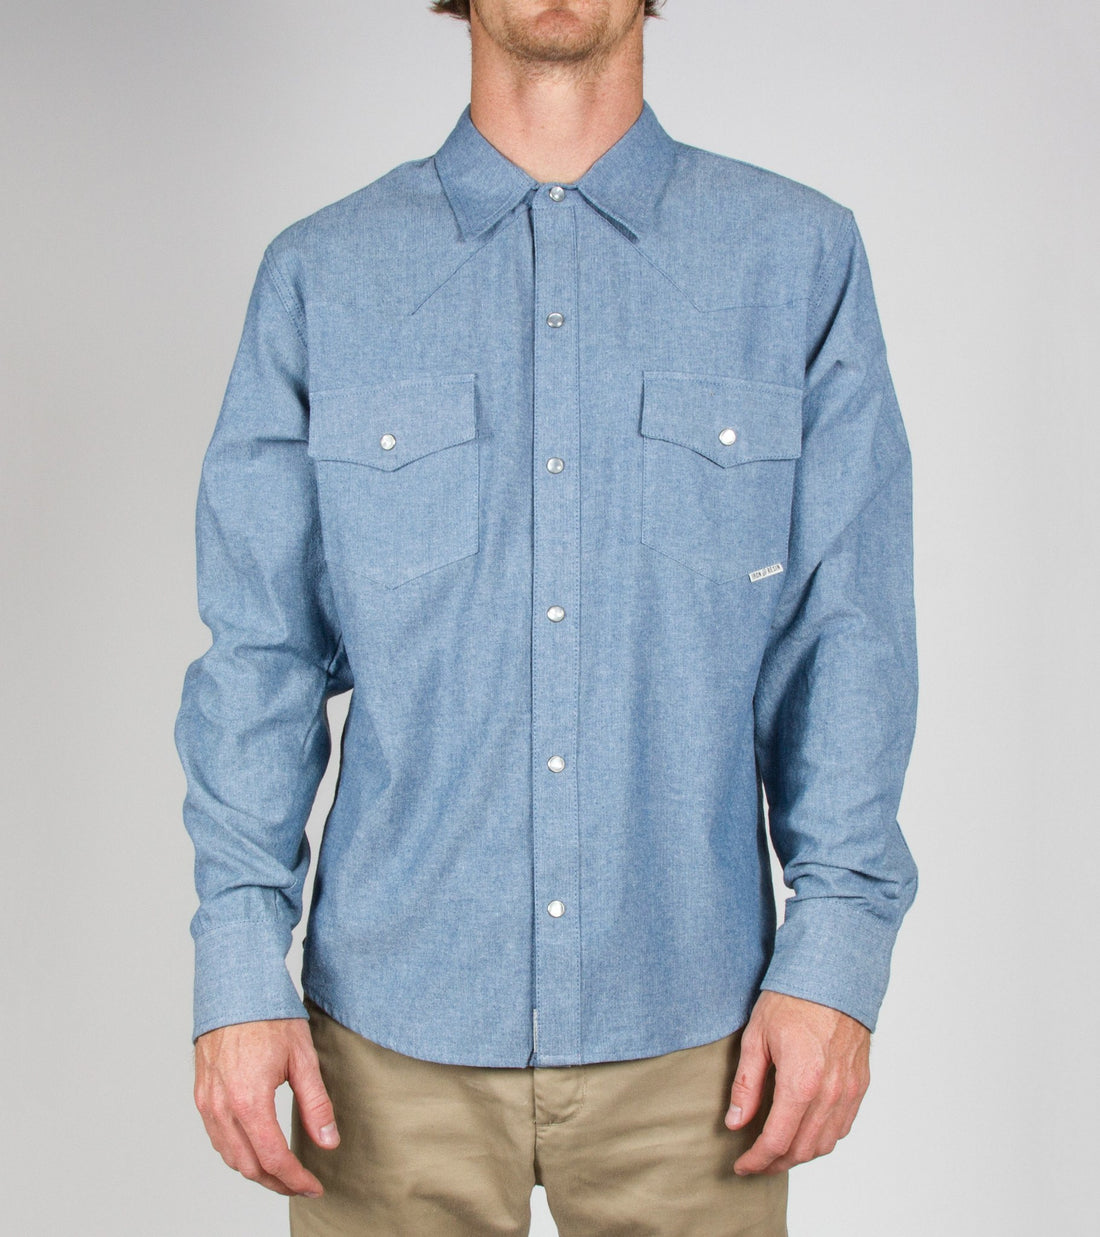 Guthrie Shirt - Apparel: Men's: Wovens - Iron and Resin